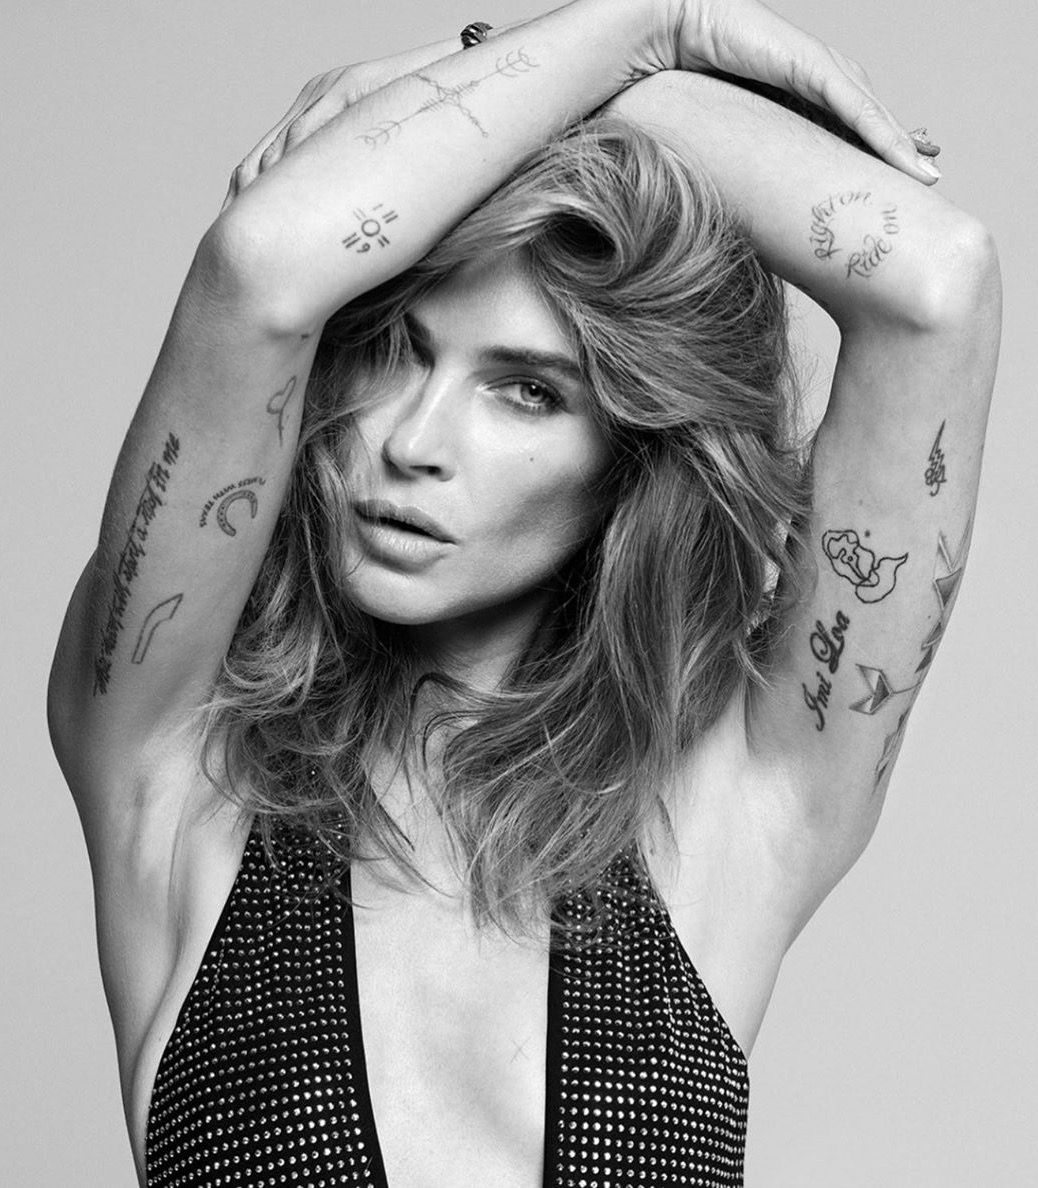 Erin Wasson Tattoo Photoshoot Ideas Erin Wasson Tattoo Photoshoot